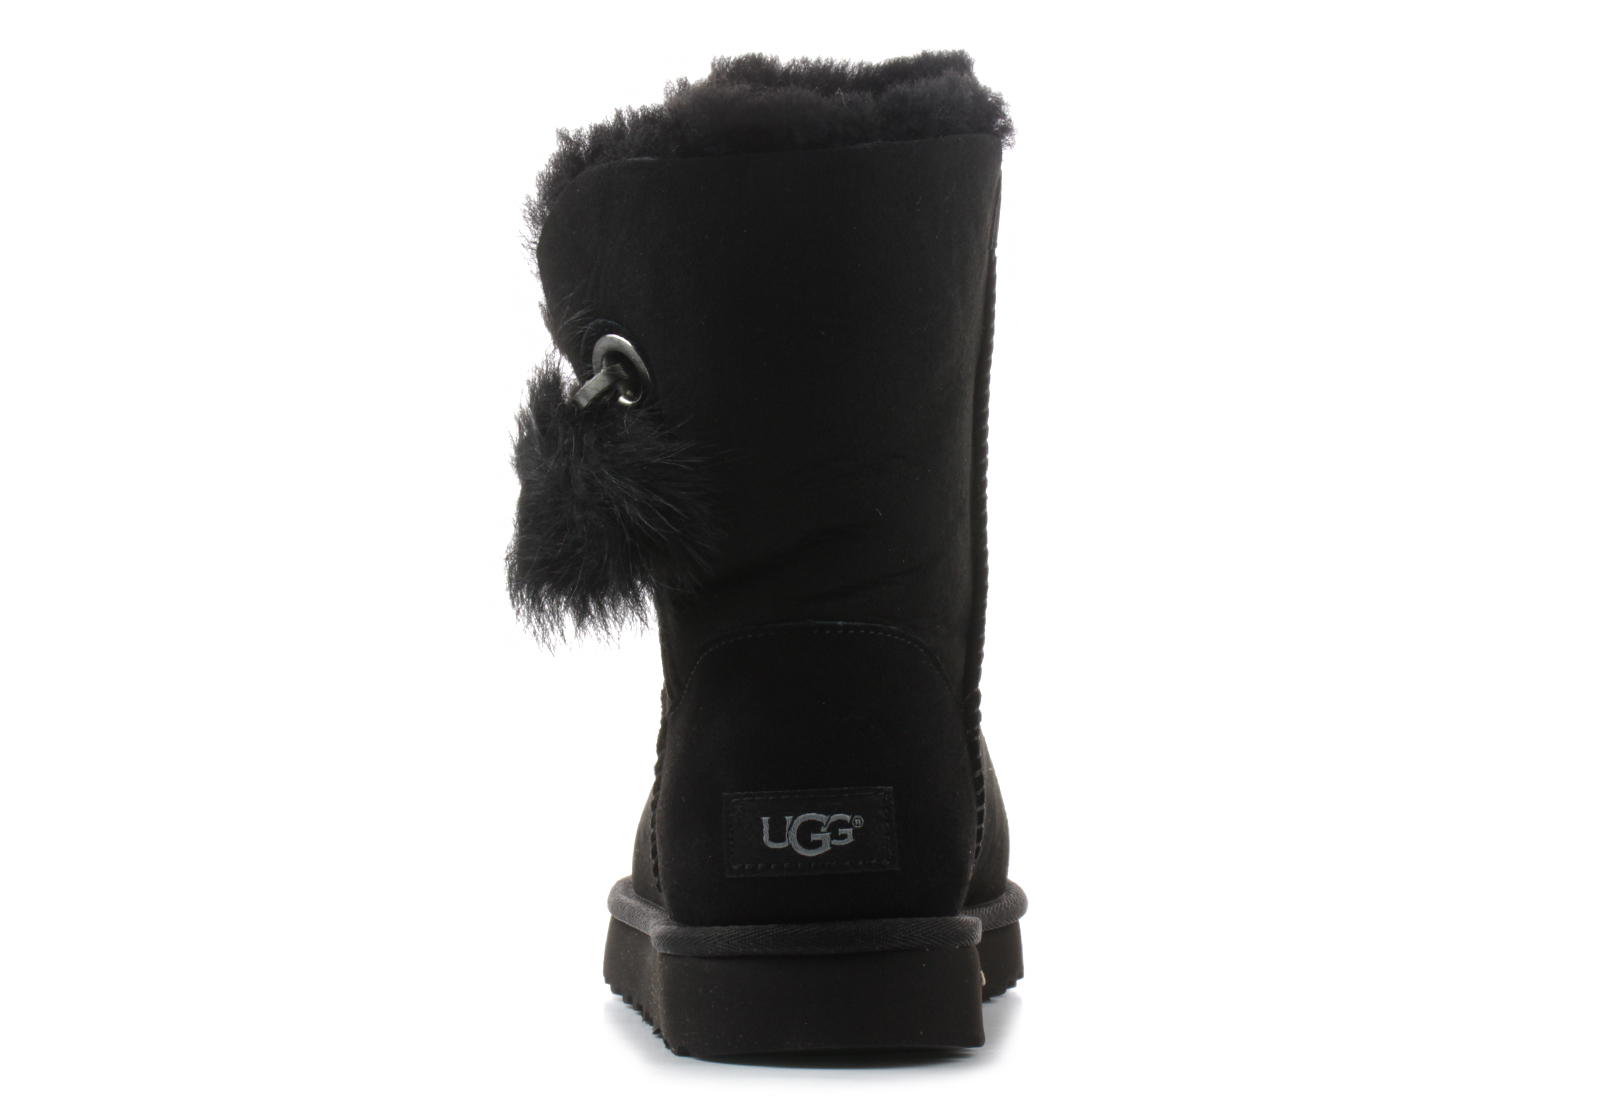 ad42103b2d4 Ugg Boots - Irina - 1017502-BLK - Online shop for sneakers, shoes and boots